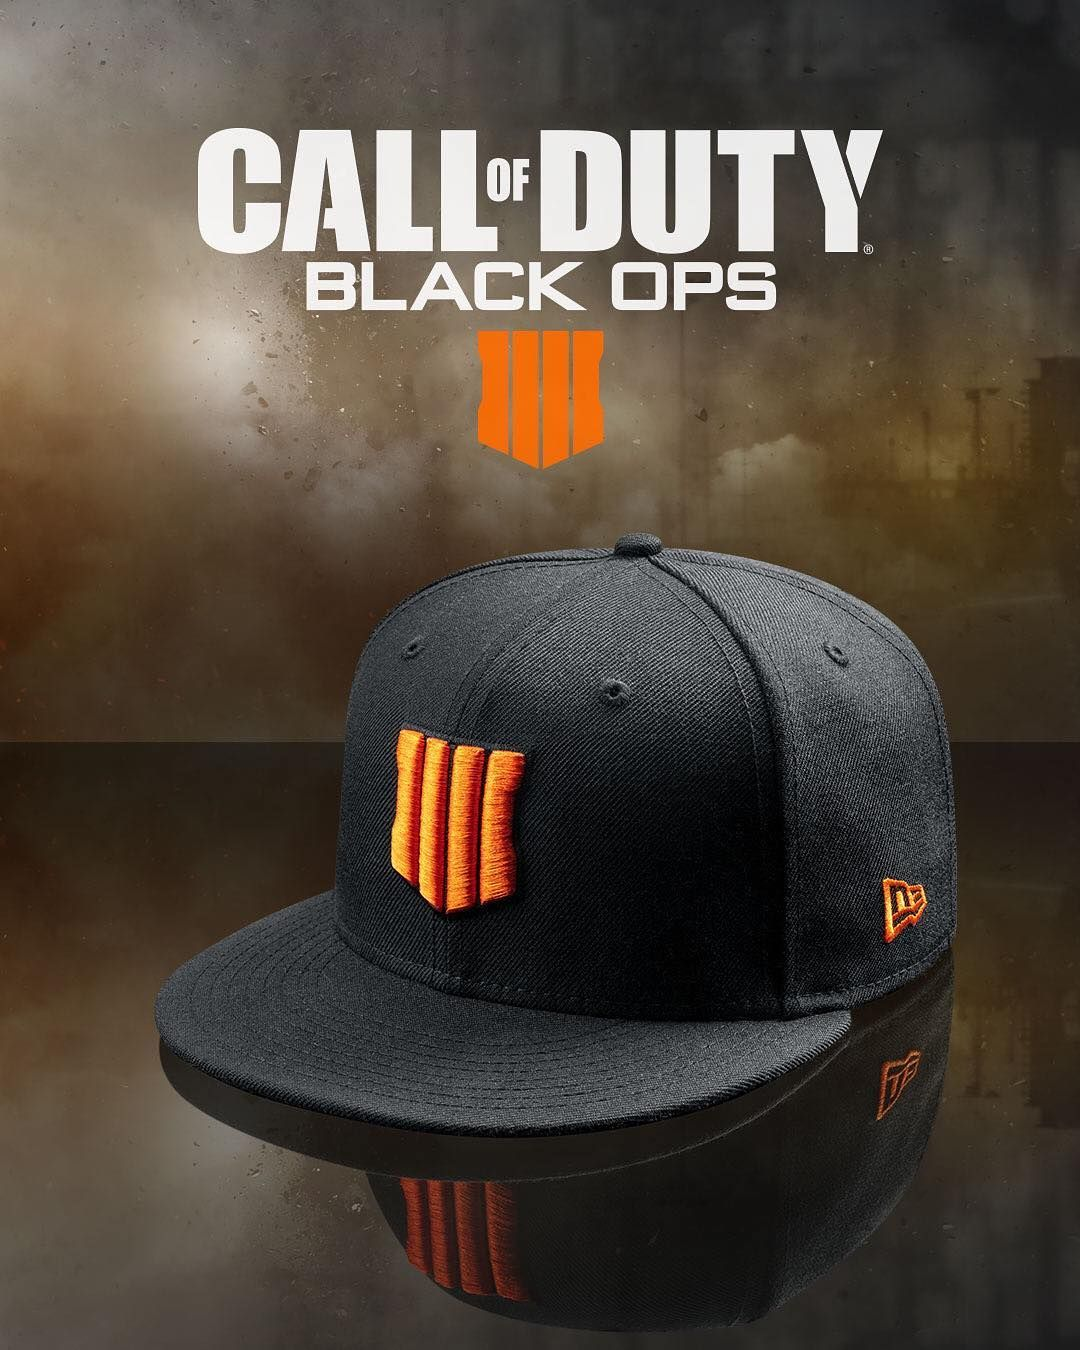 buy popular ea9dc 43aae Limited edition  callofduty Black Ops 4  59FIFTY Fitted caps are now  available at neweracap.com. Quantities are very…